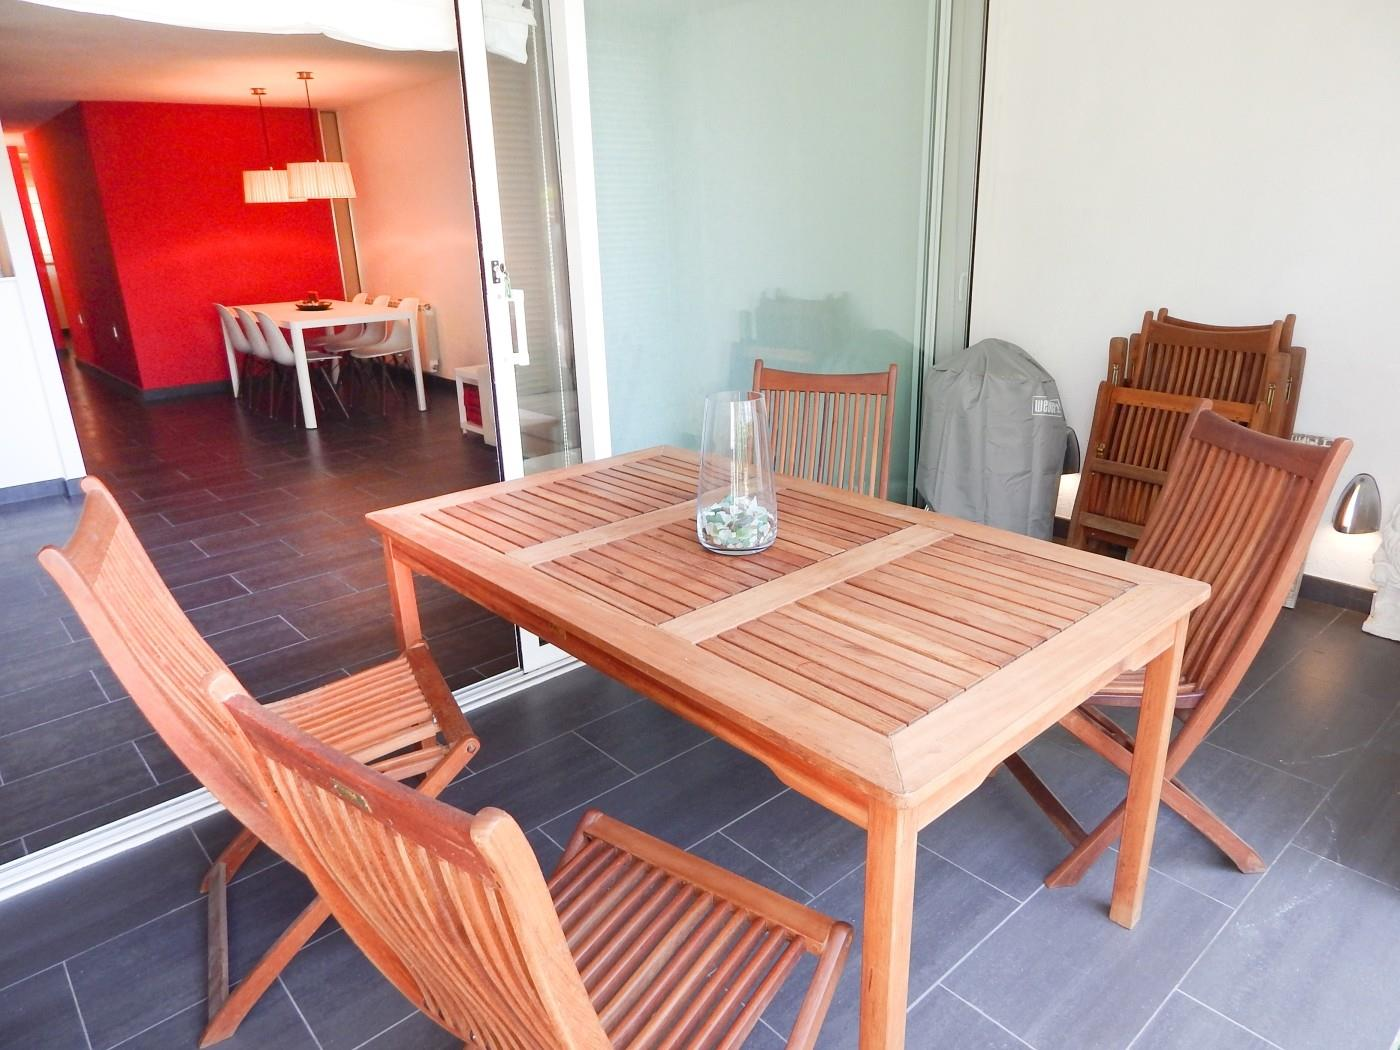 Rent Apartment with Swimming pool in Platja d'Aro - Gardenies Planta Baixa Piscina i Wifi - 6